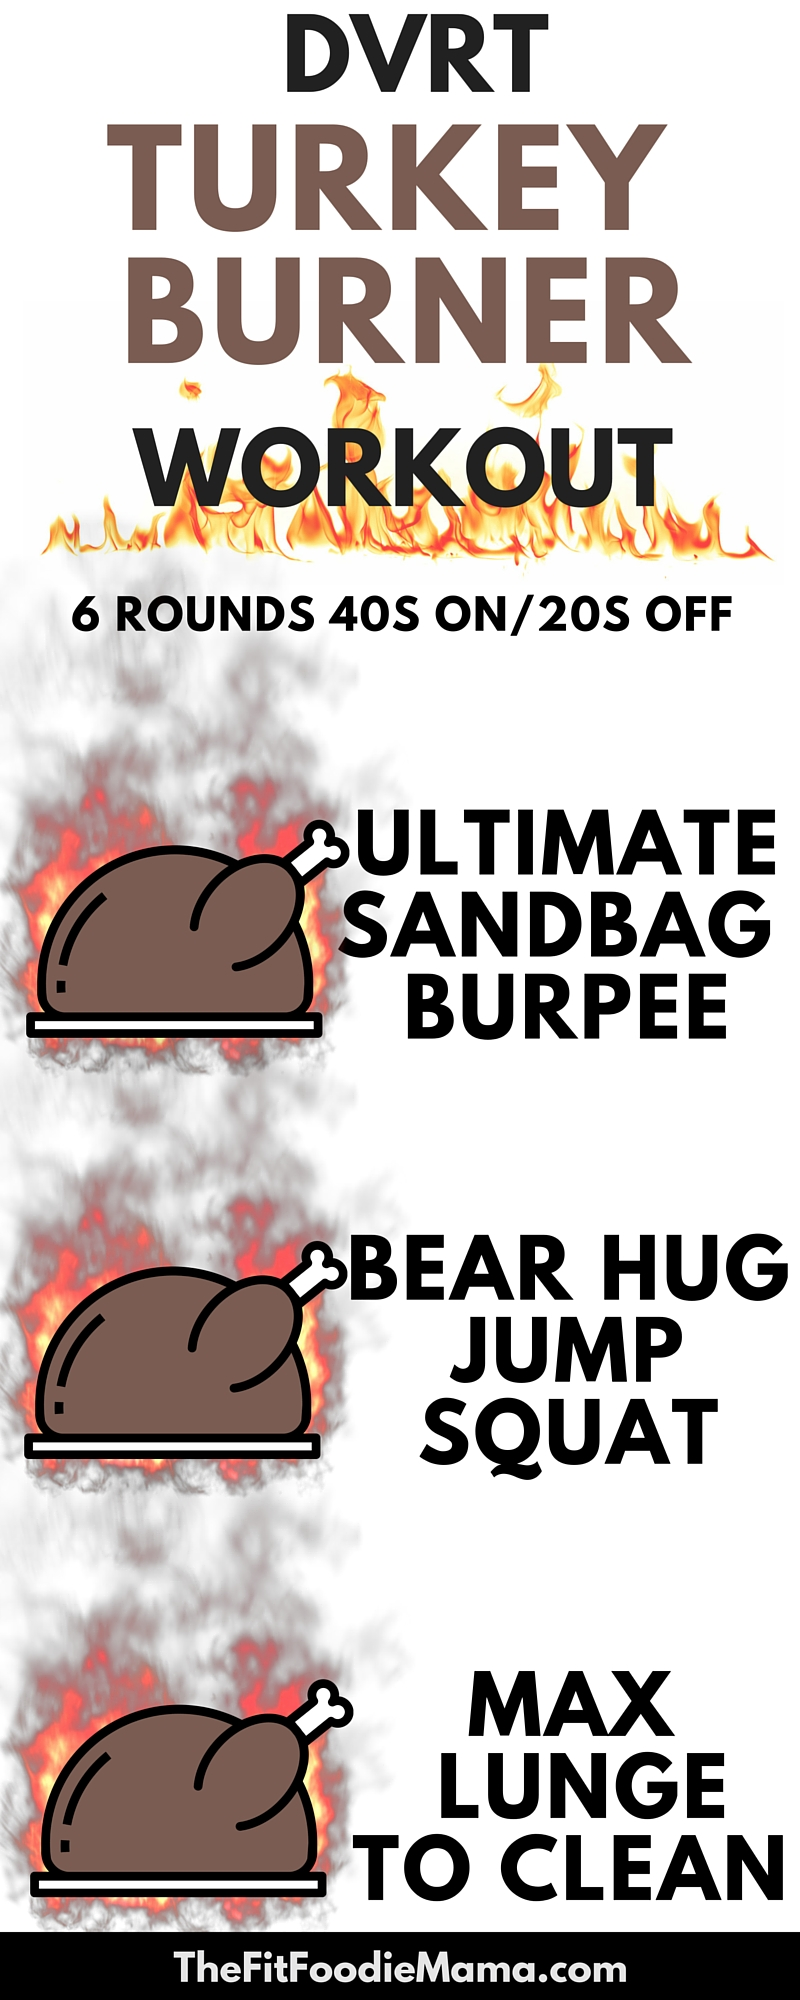 DVRT #UltimateSandbag Turkey Burner HIIT Workout.  Burn the Thanksgiving calories with this functional fitness Dynamic Variable Resistance Training Ultimate Sandbag high intensity interval training workout: USB Burpees, Bear Hug Squat Jumps, MAX Lunge to Clean.